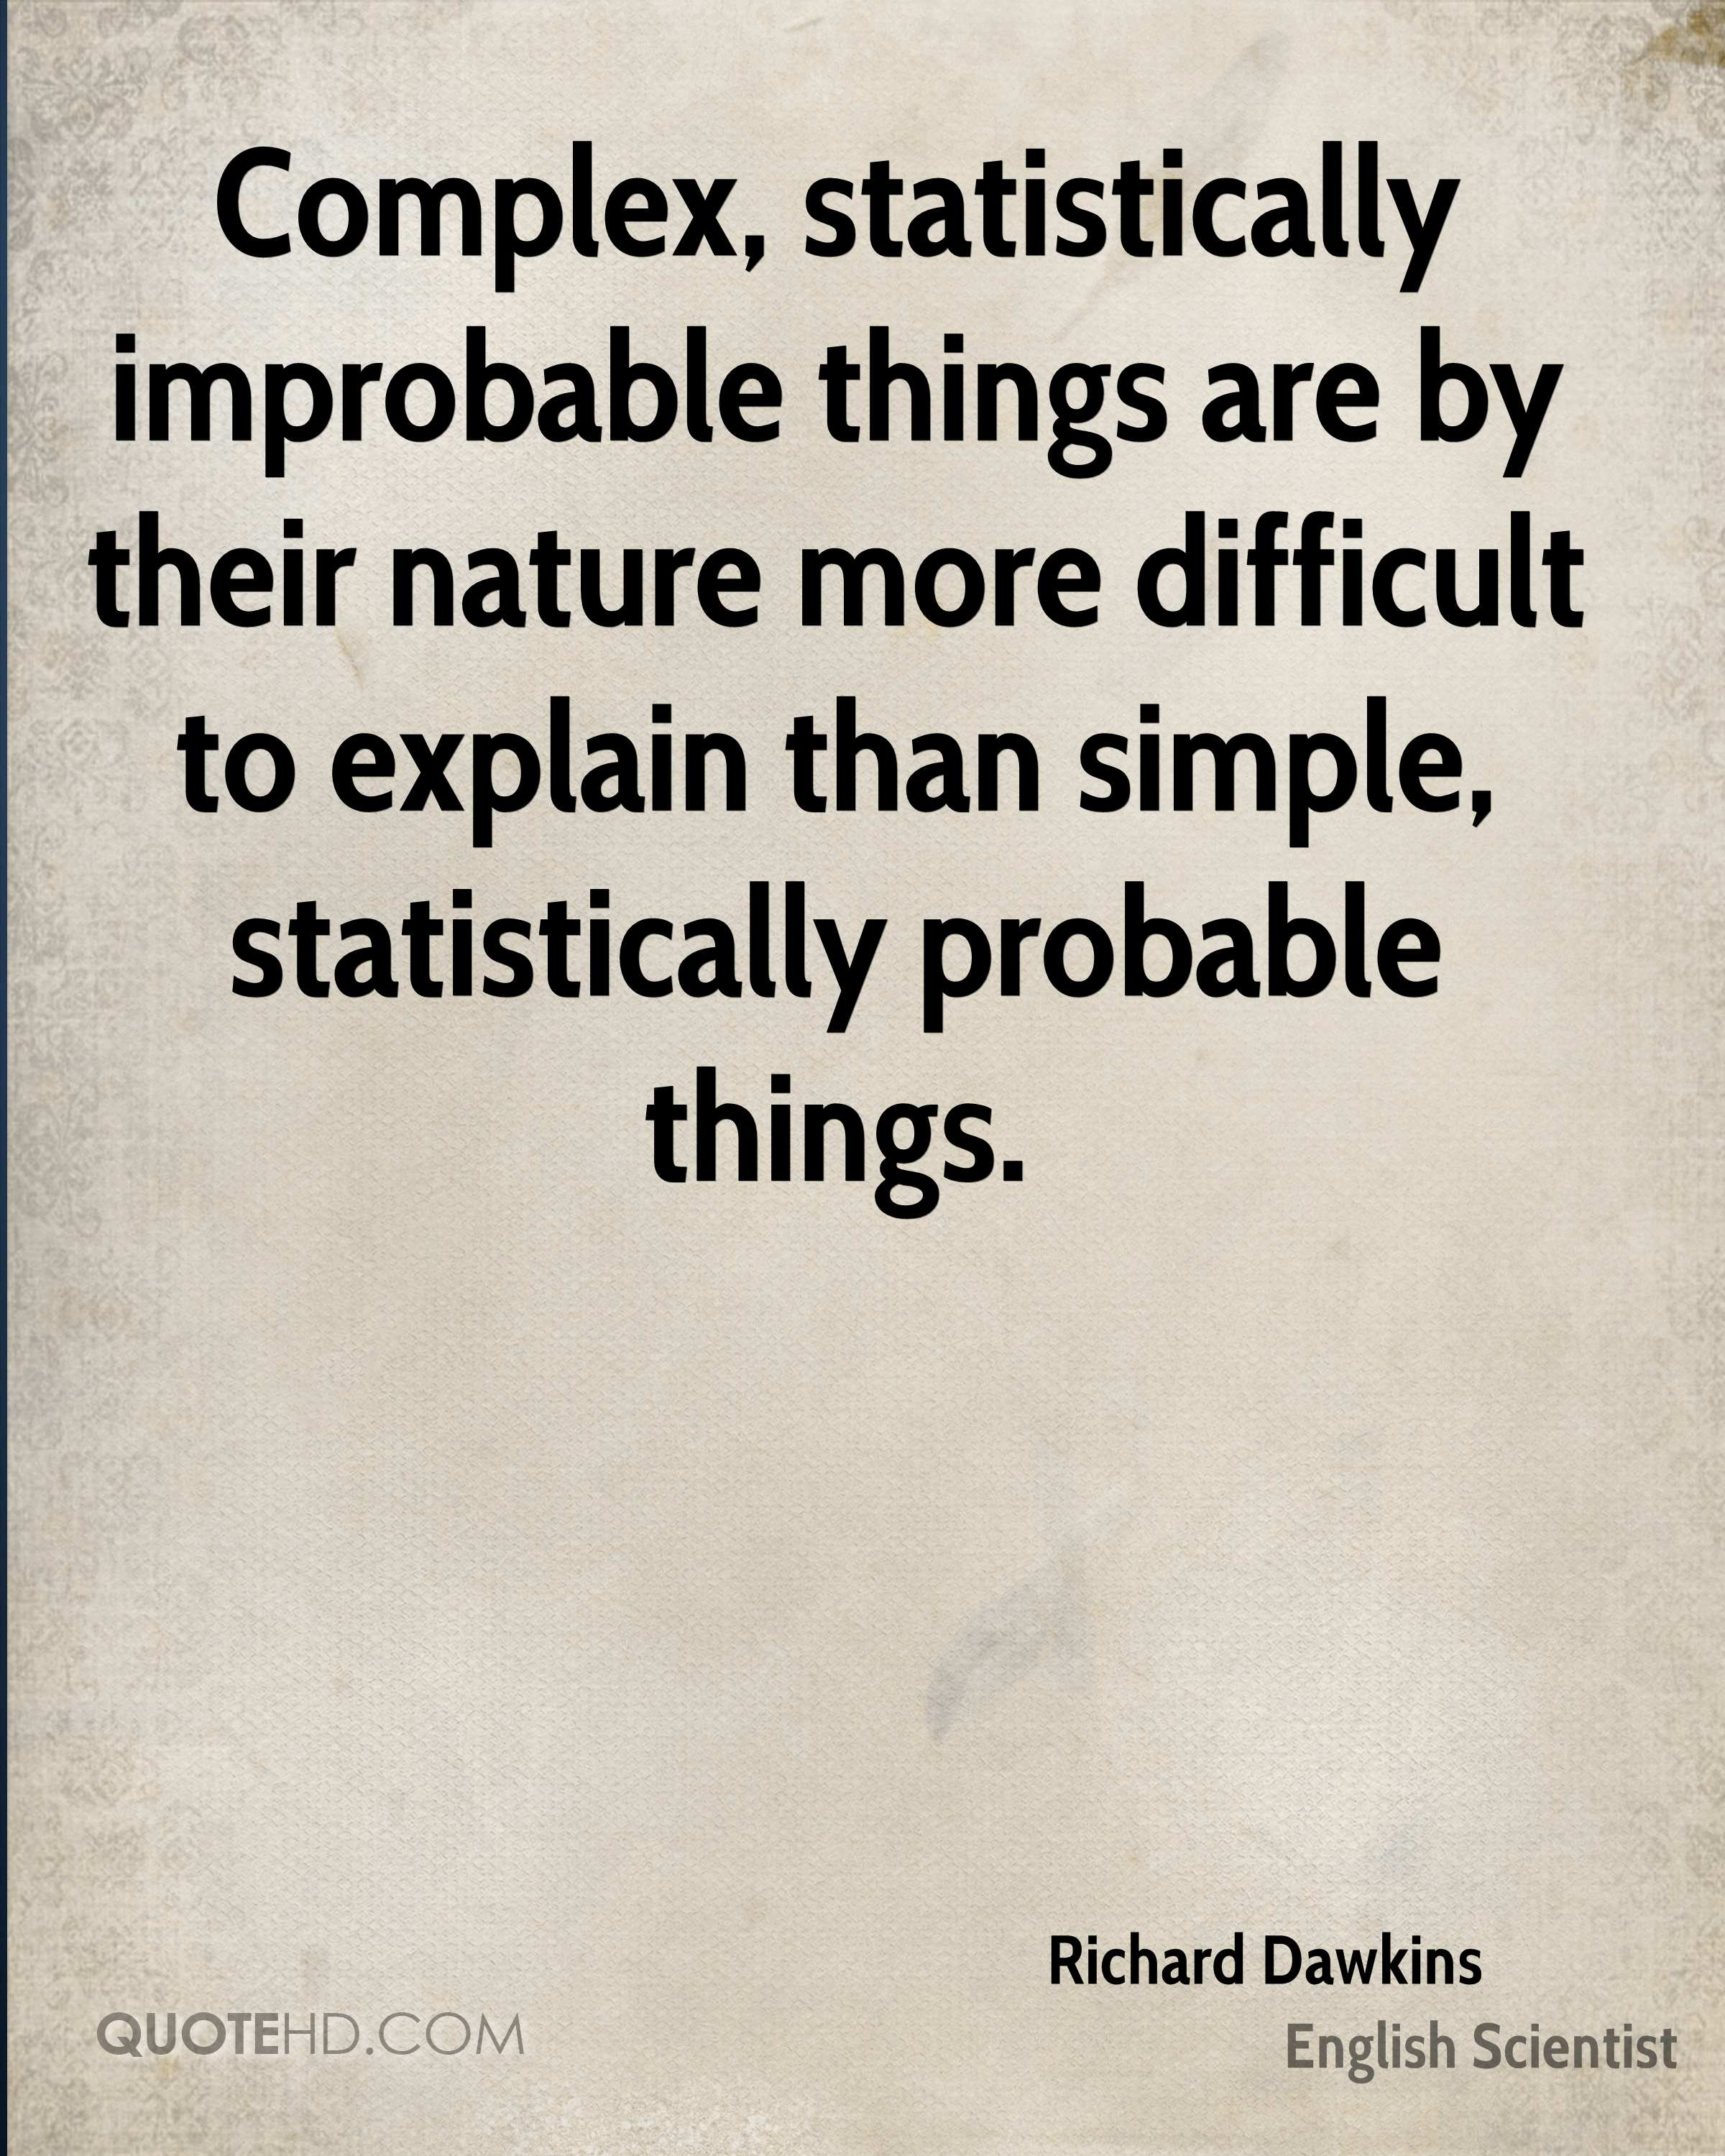 Complex, statistically improbable things are by their nature more difficult to explain than simple, statistically probable things.